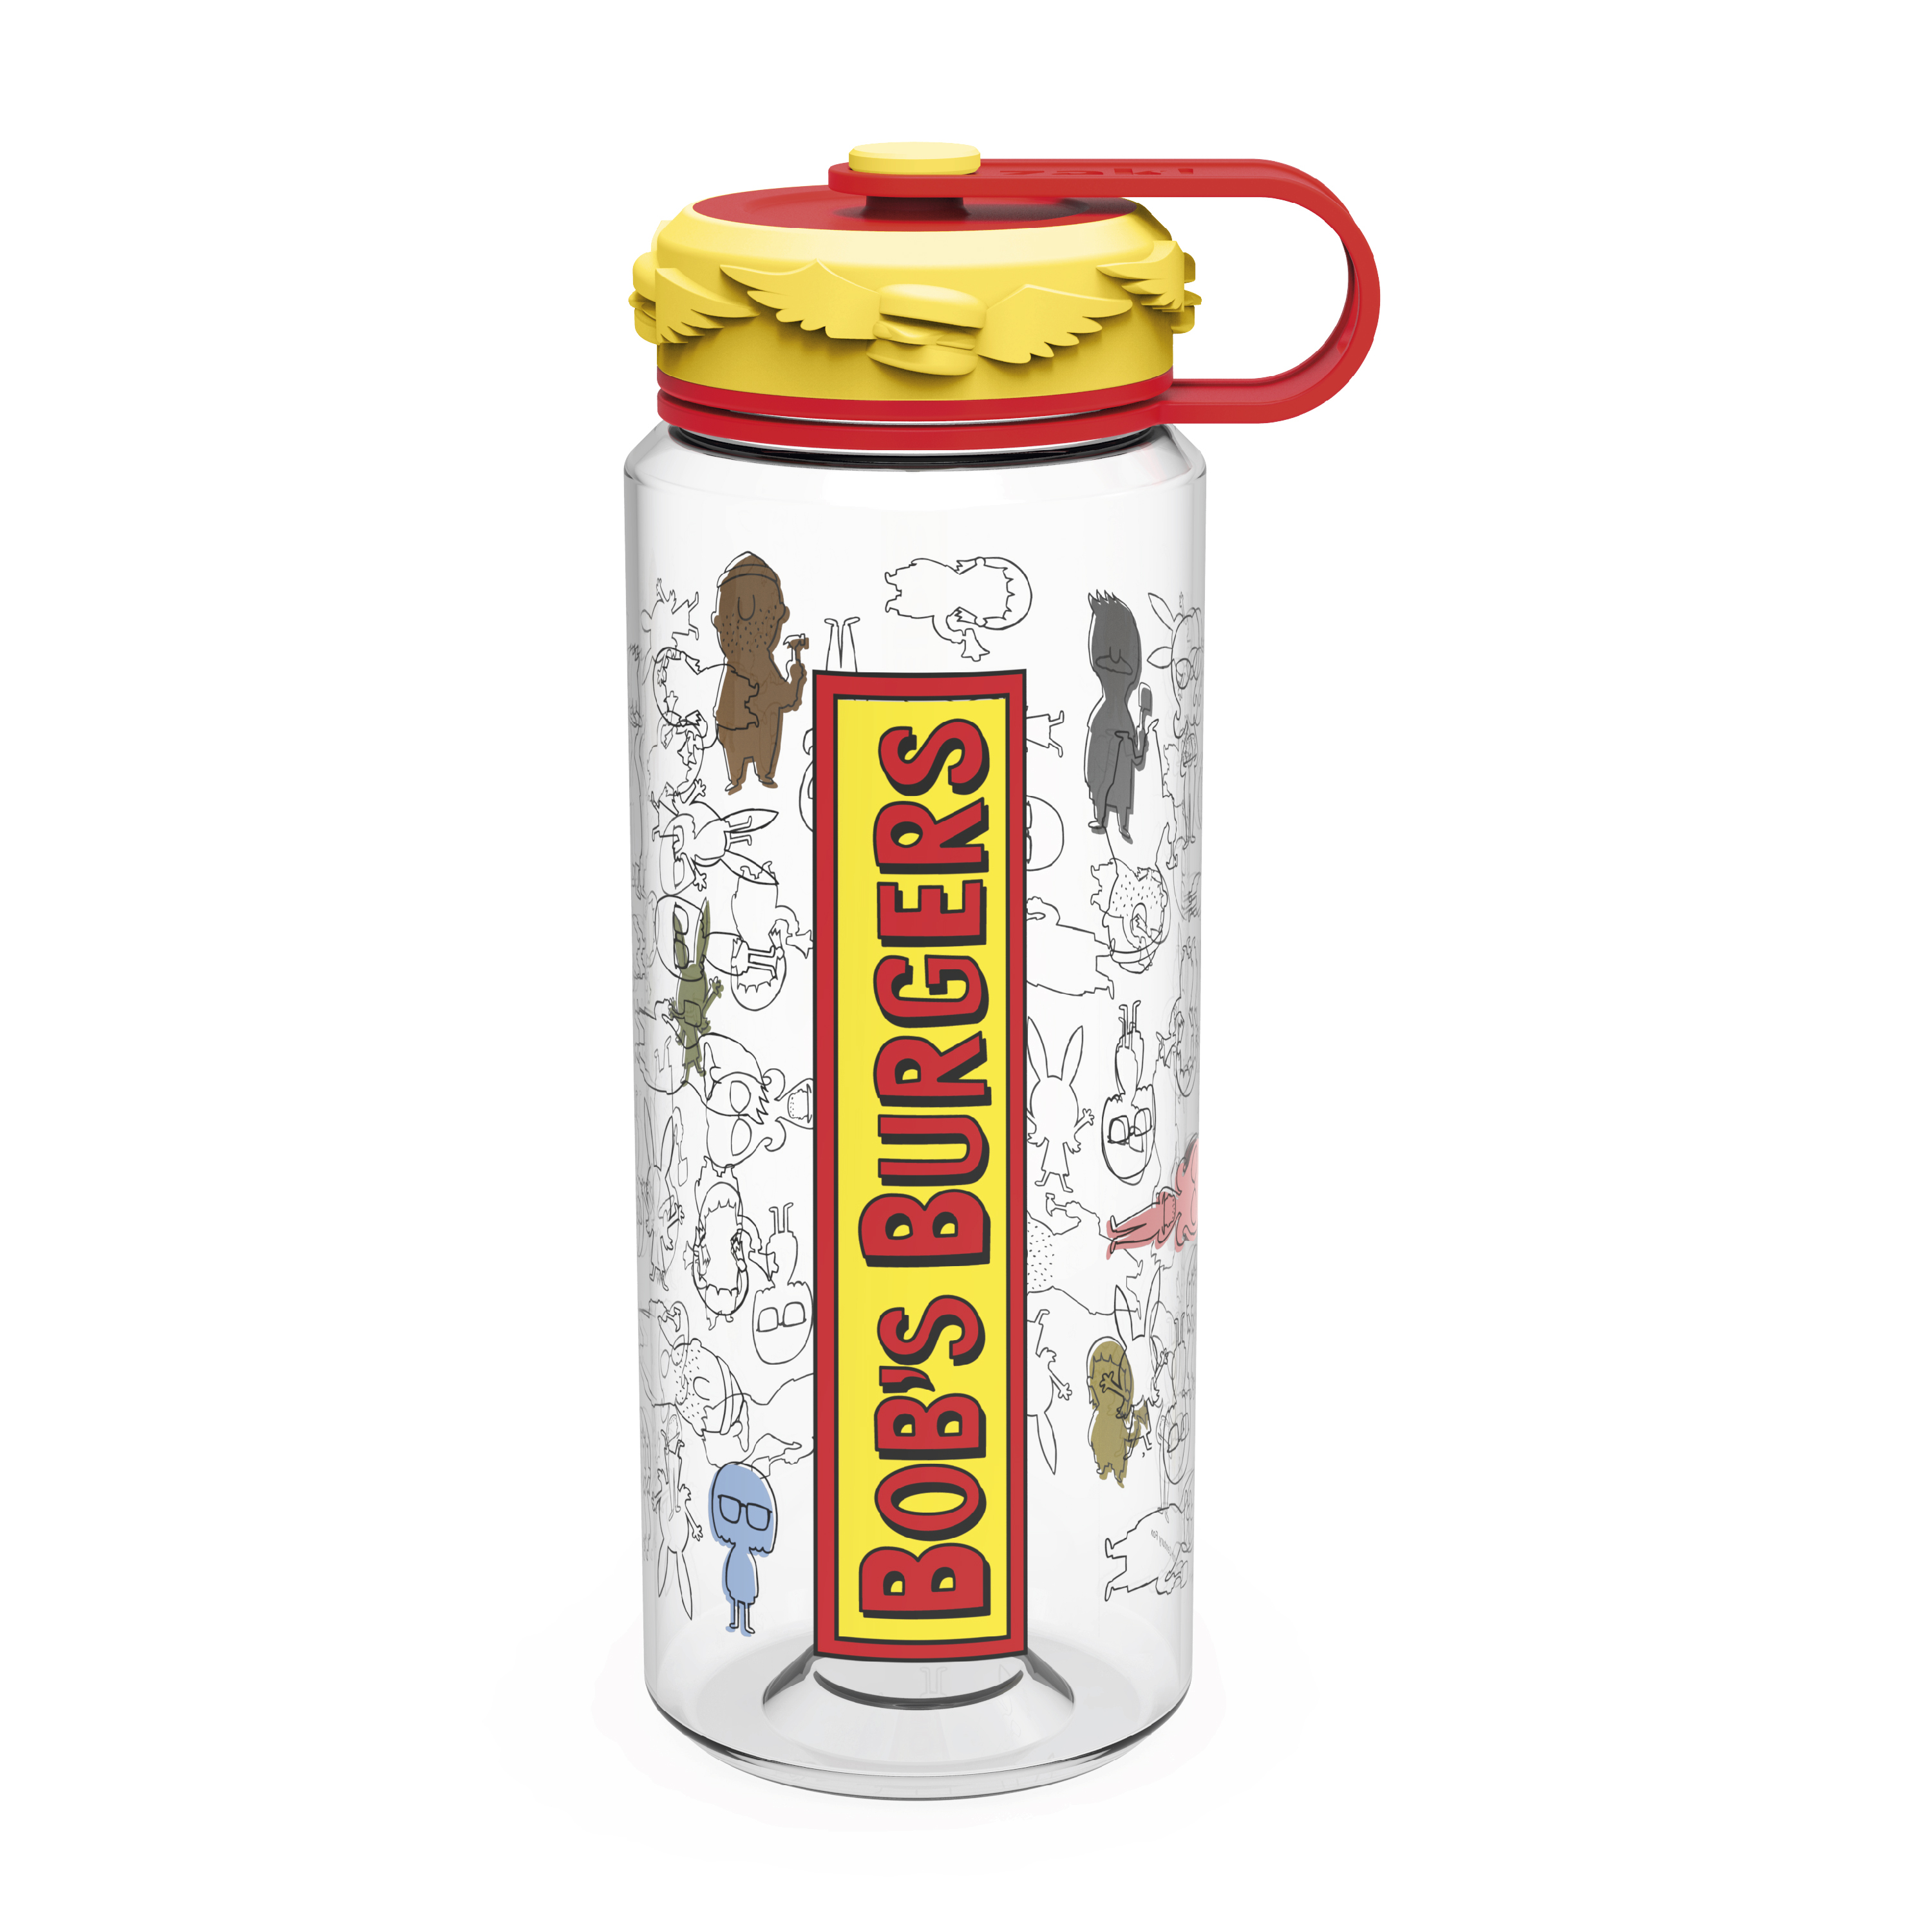 Bobs Burgers 36 ounce Water Bottles, The Belcher Family slideshow image 1